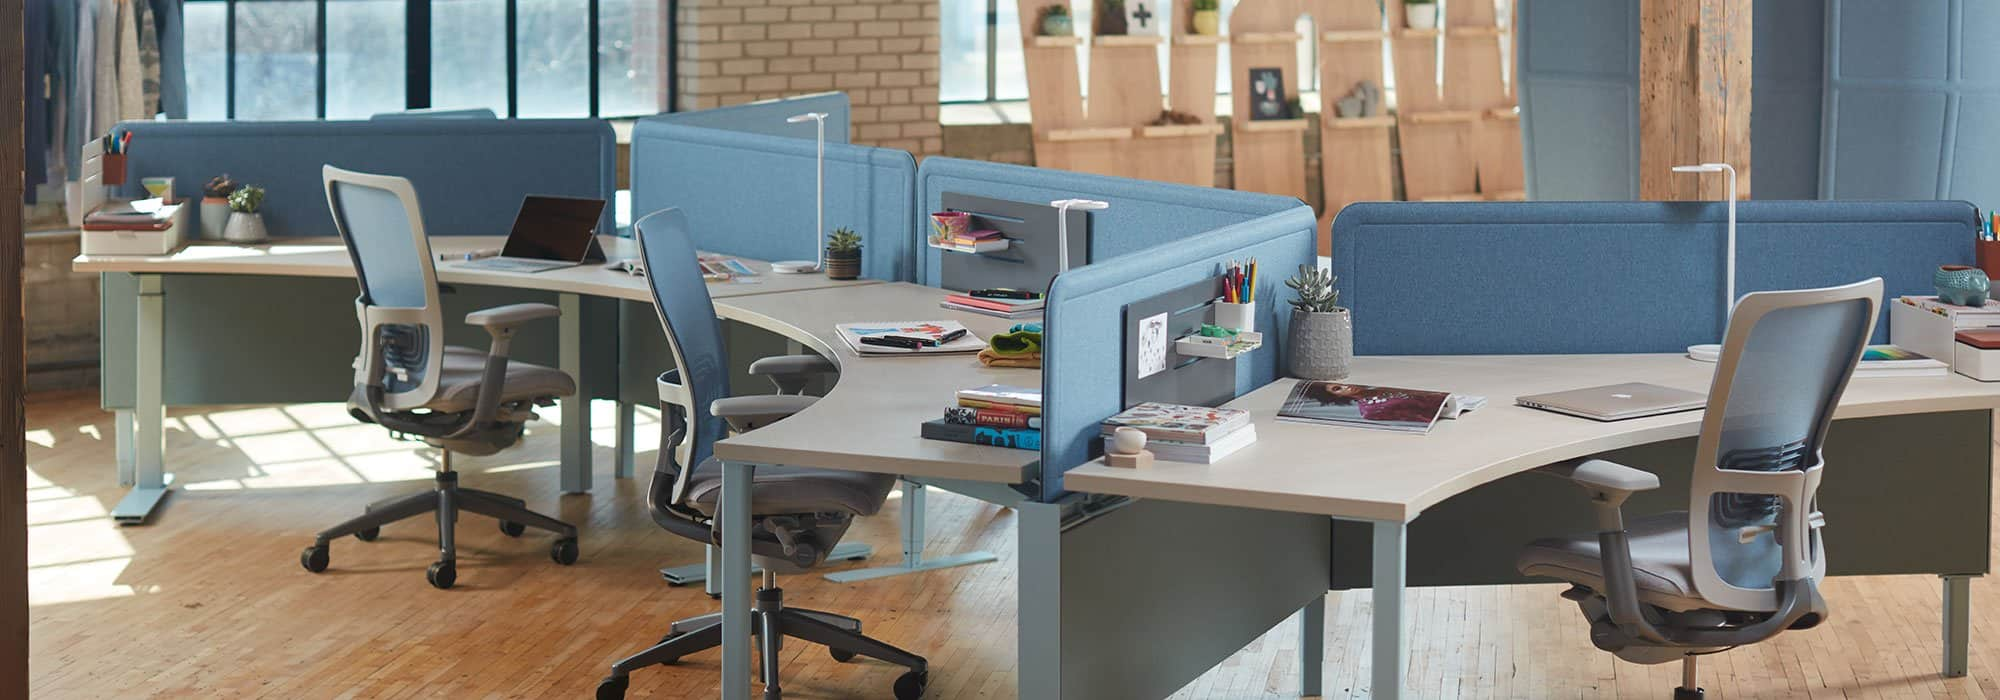 compose-connections-haworth- workspace- partition system 1